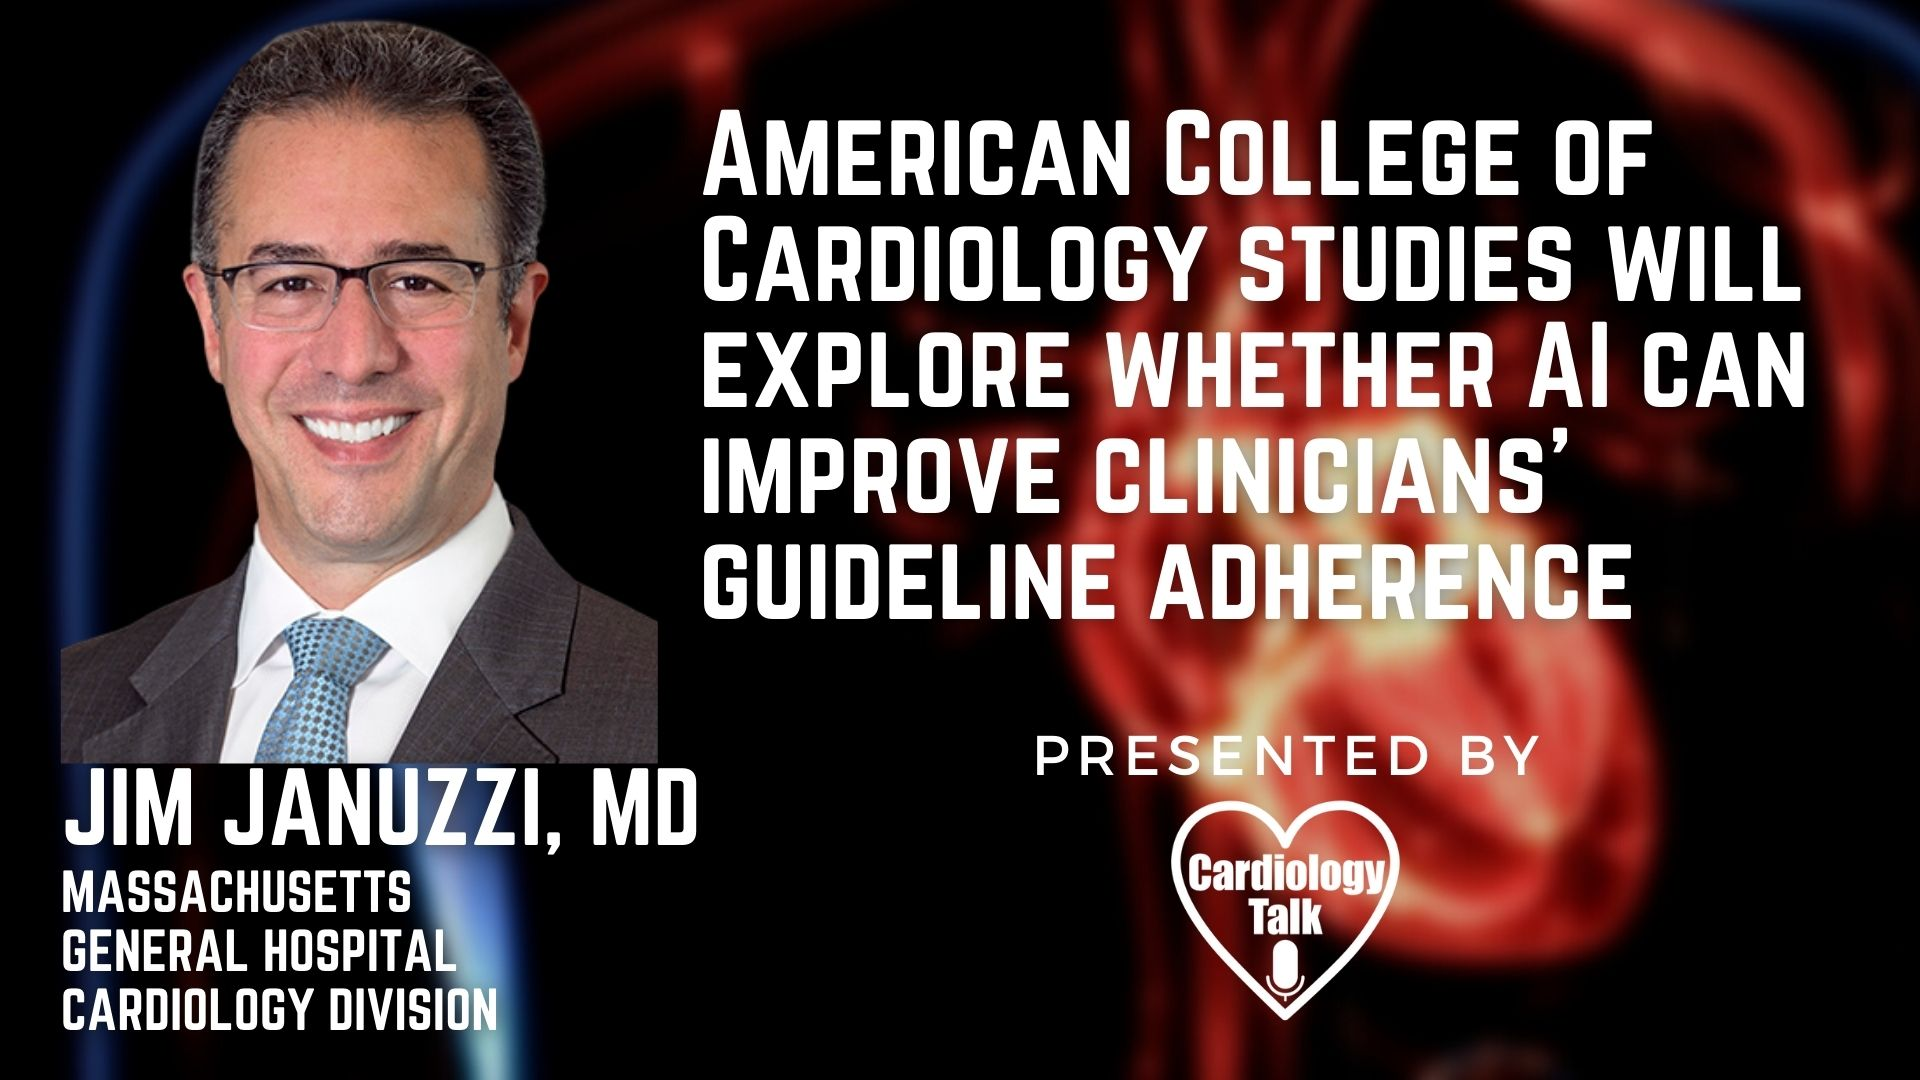 Jim Januzzi, MD @JJheart_doc @MGHHeartHealth #Cardiology #Research ACC Studies Will Explore Whether AI Can Improve Clinicians' Guideline Adherence